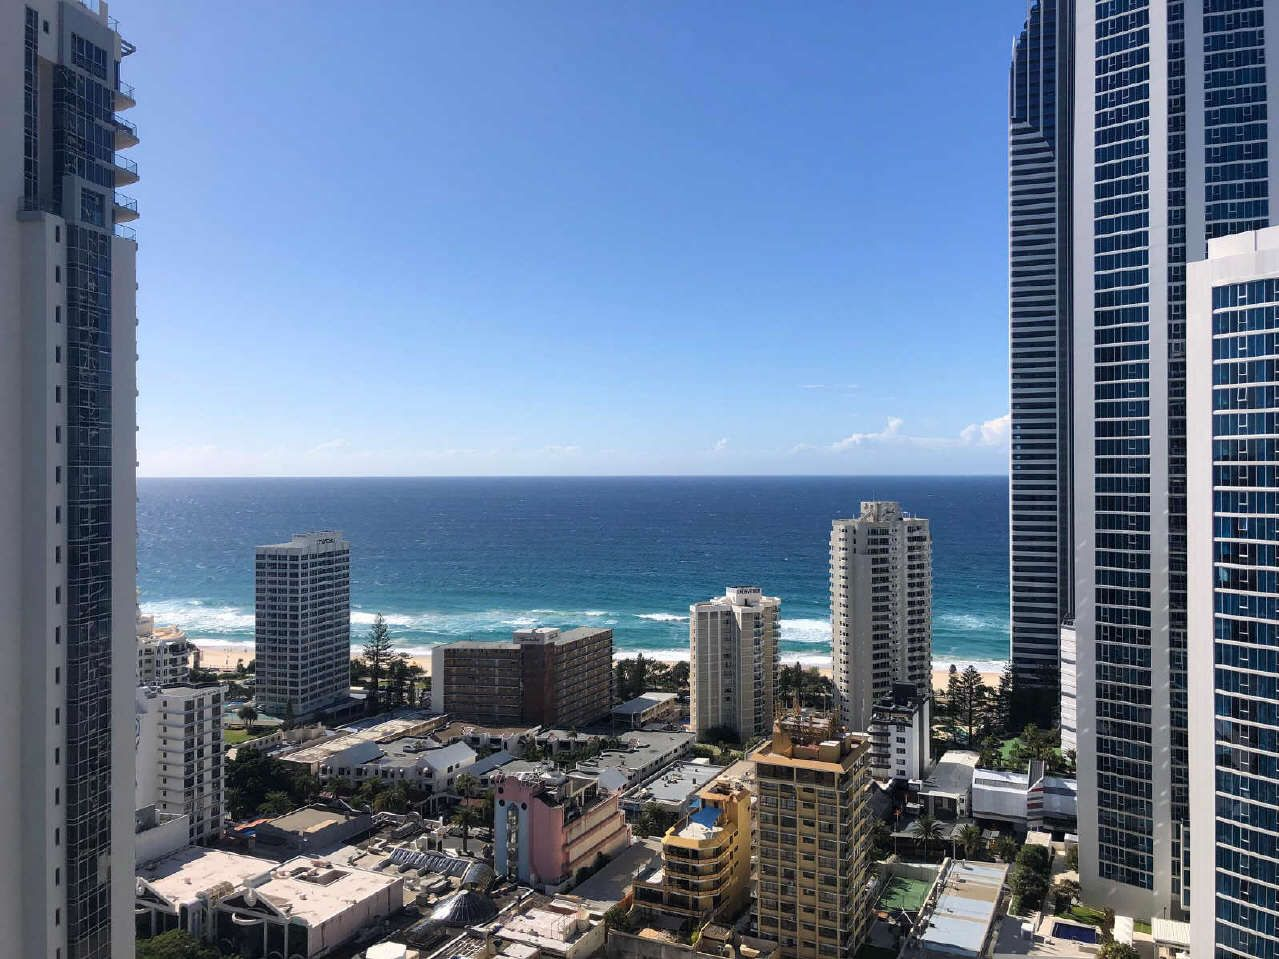 2274, Mantra Circle On Cavill